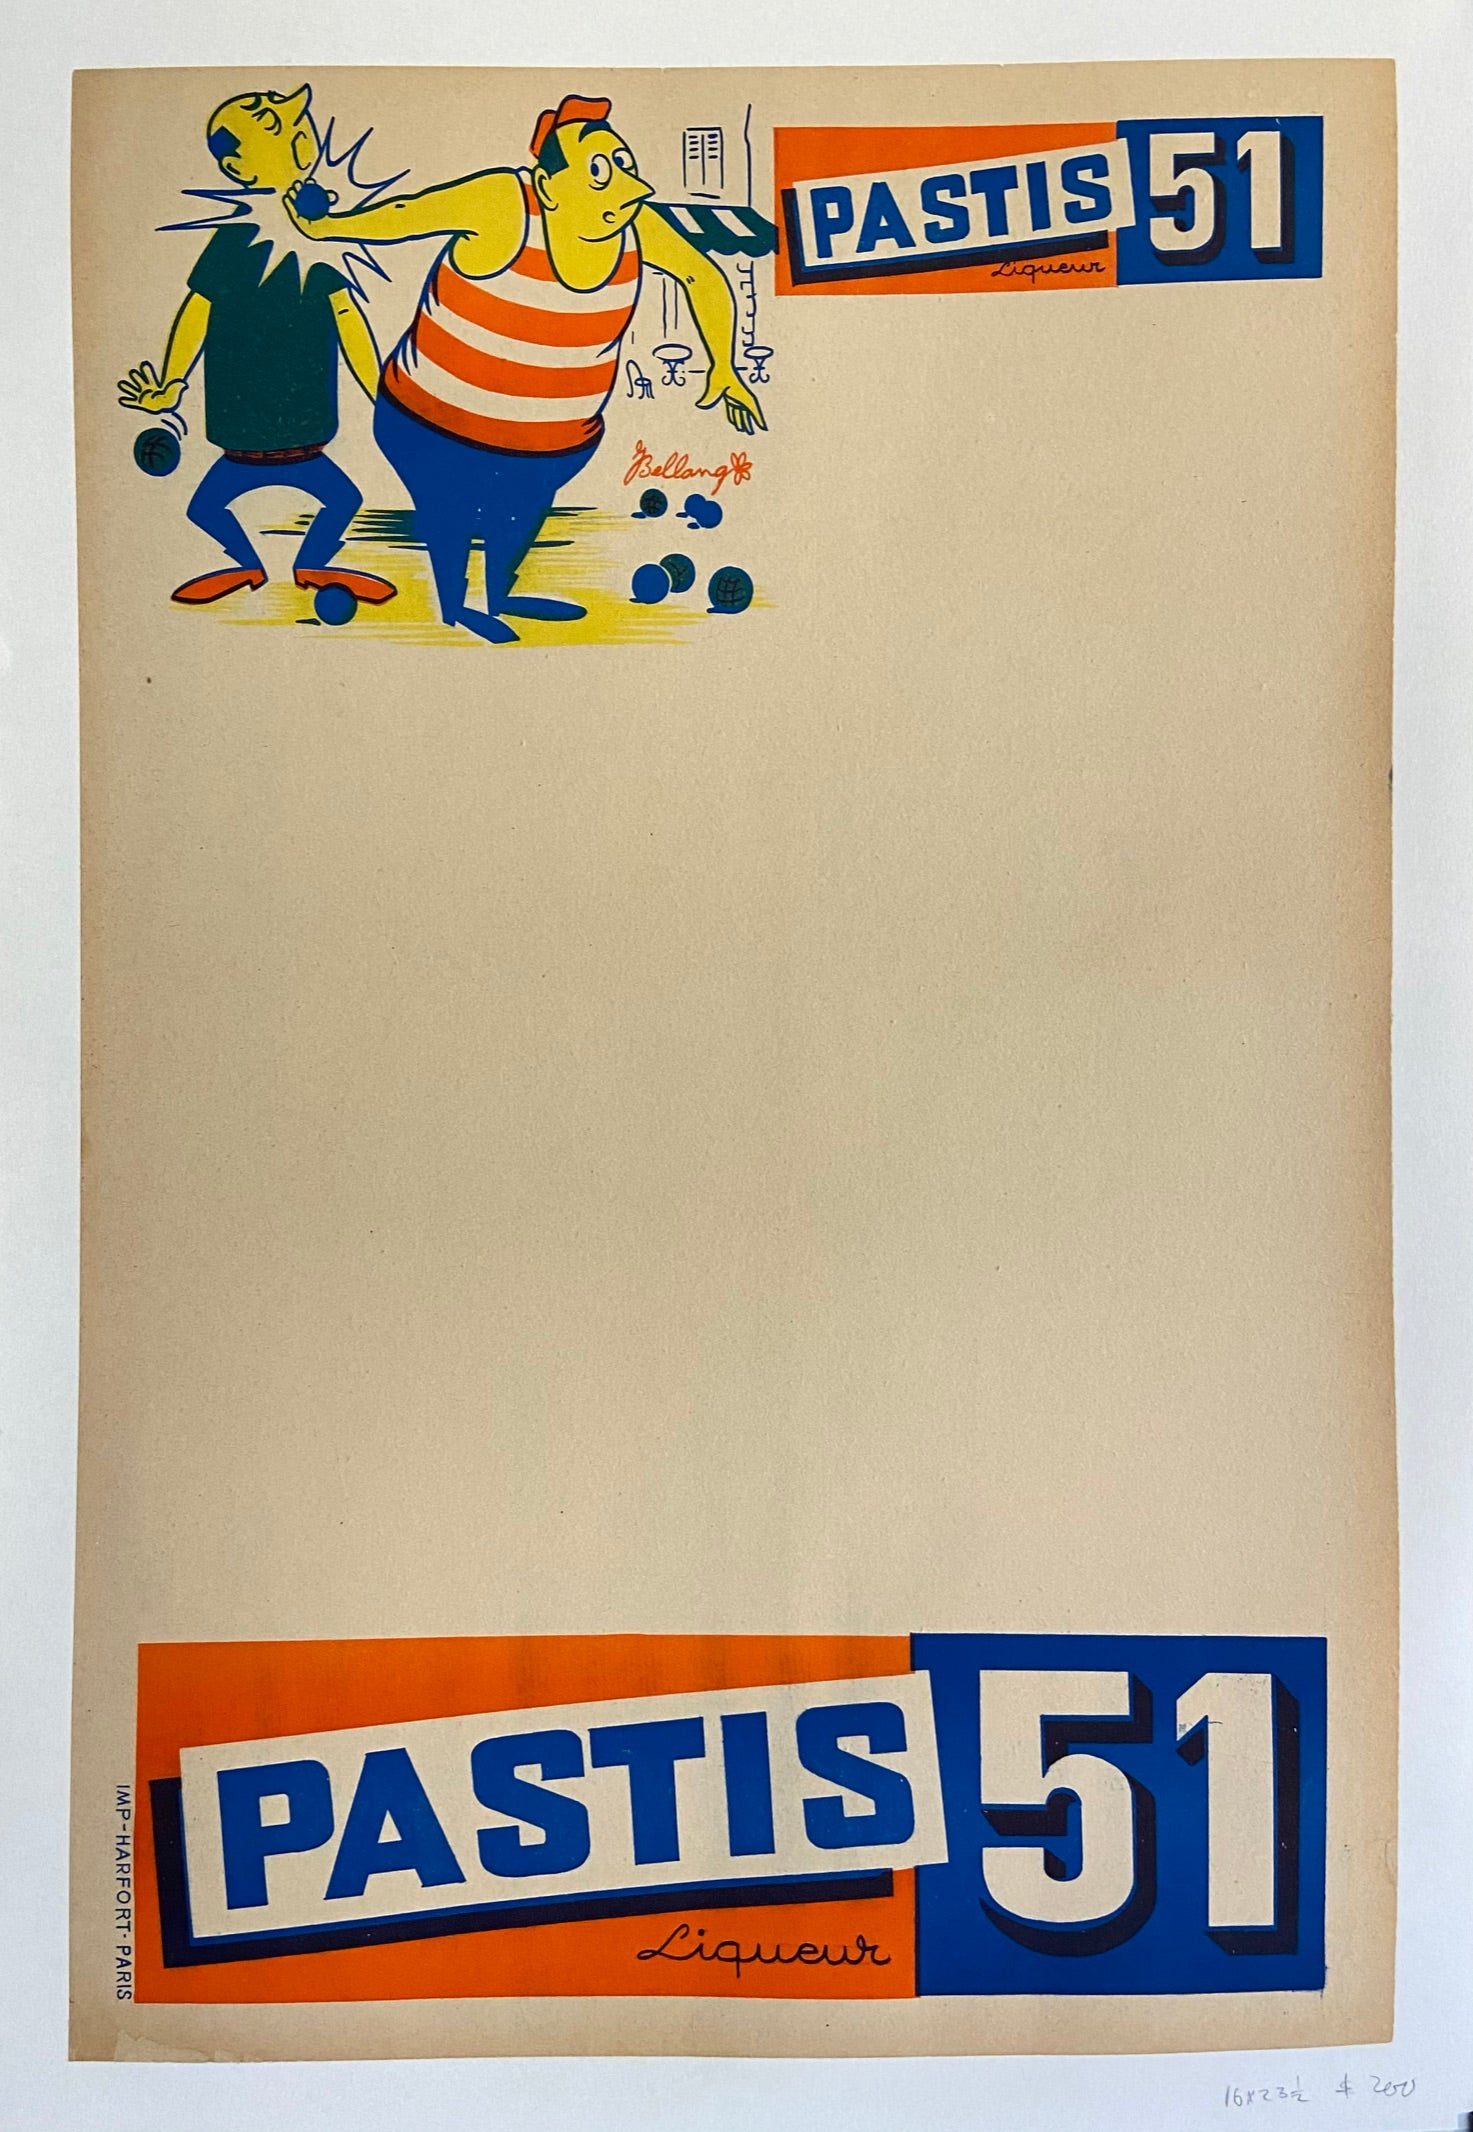 Poster for Ricard's Pastis 51 featuring a cartoon of two men playing bocce ball